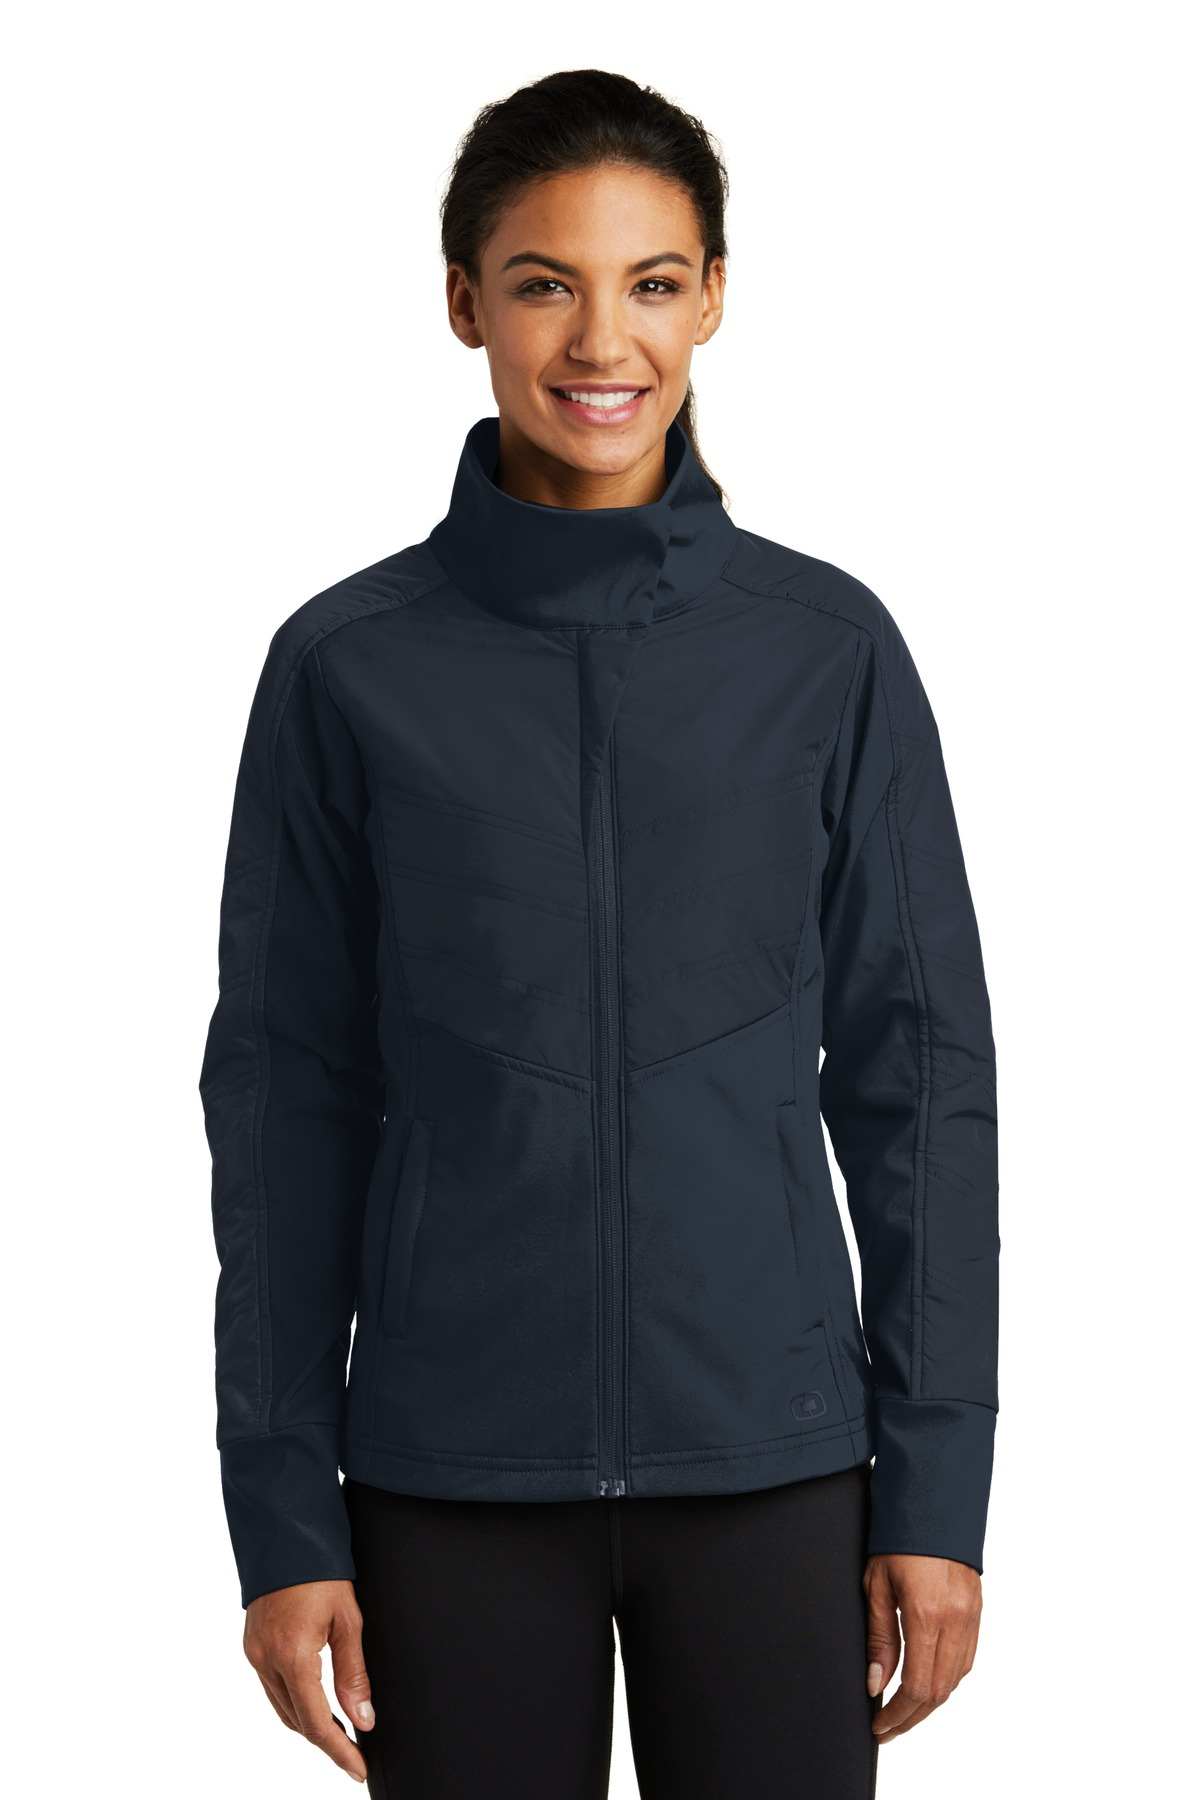 OGIO ®  ENDURANCE Ladies Brink Soft Shell. LOE722 - Propel Navy